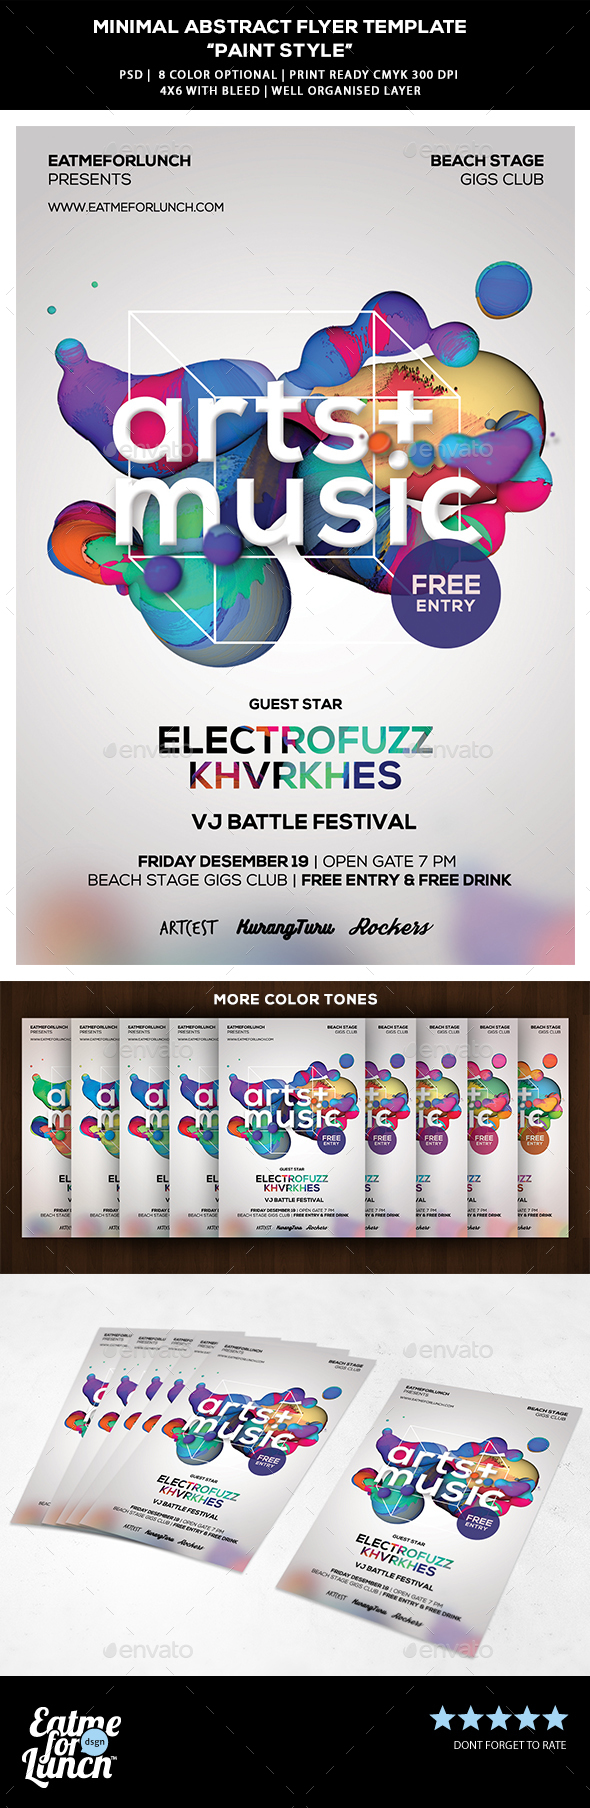 Minimal Abstract Flyer Template - Paint Style - Concerts Events